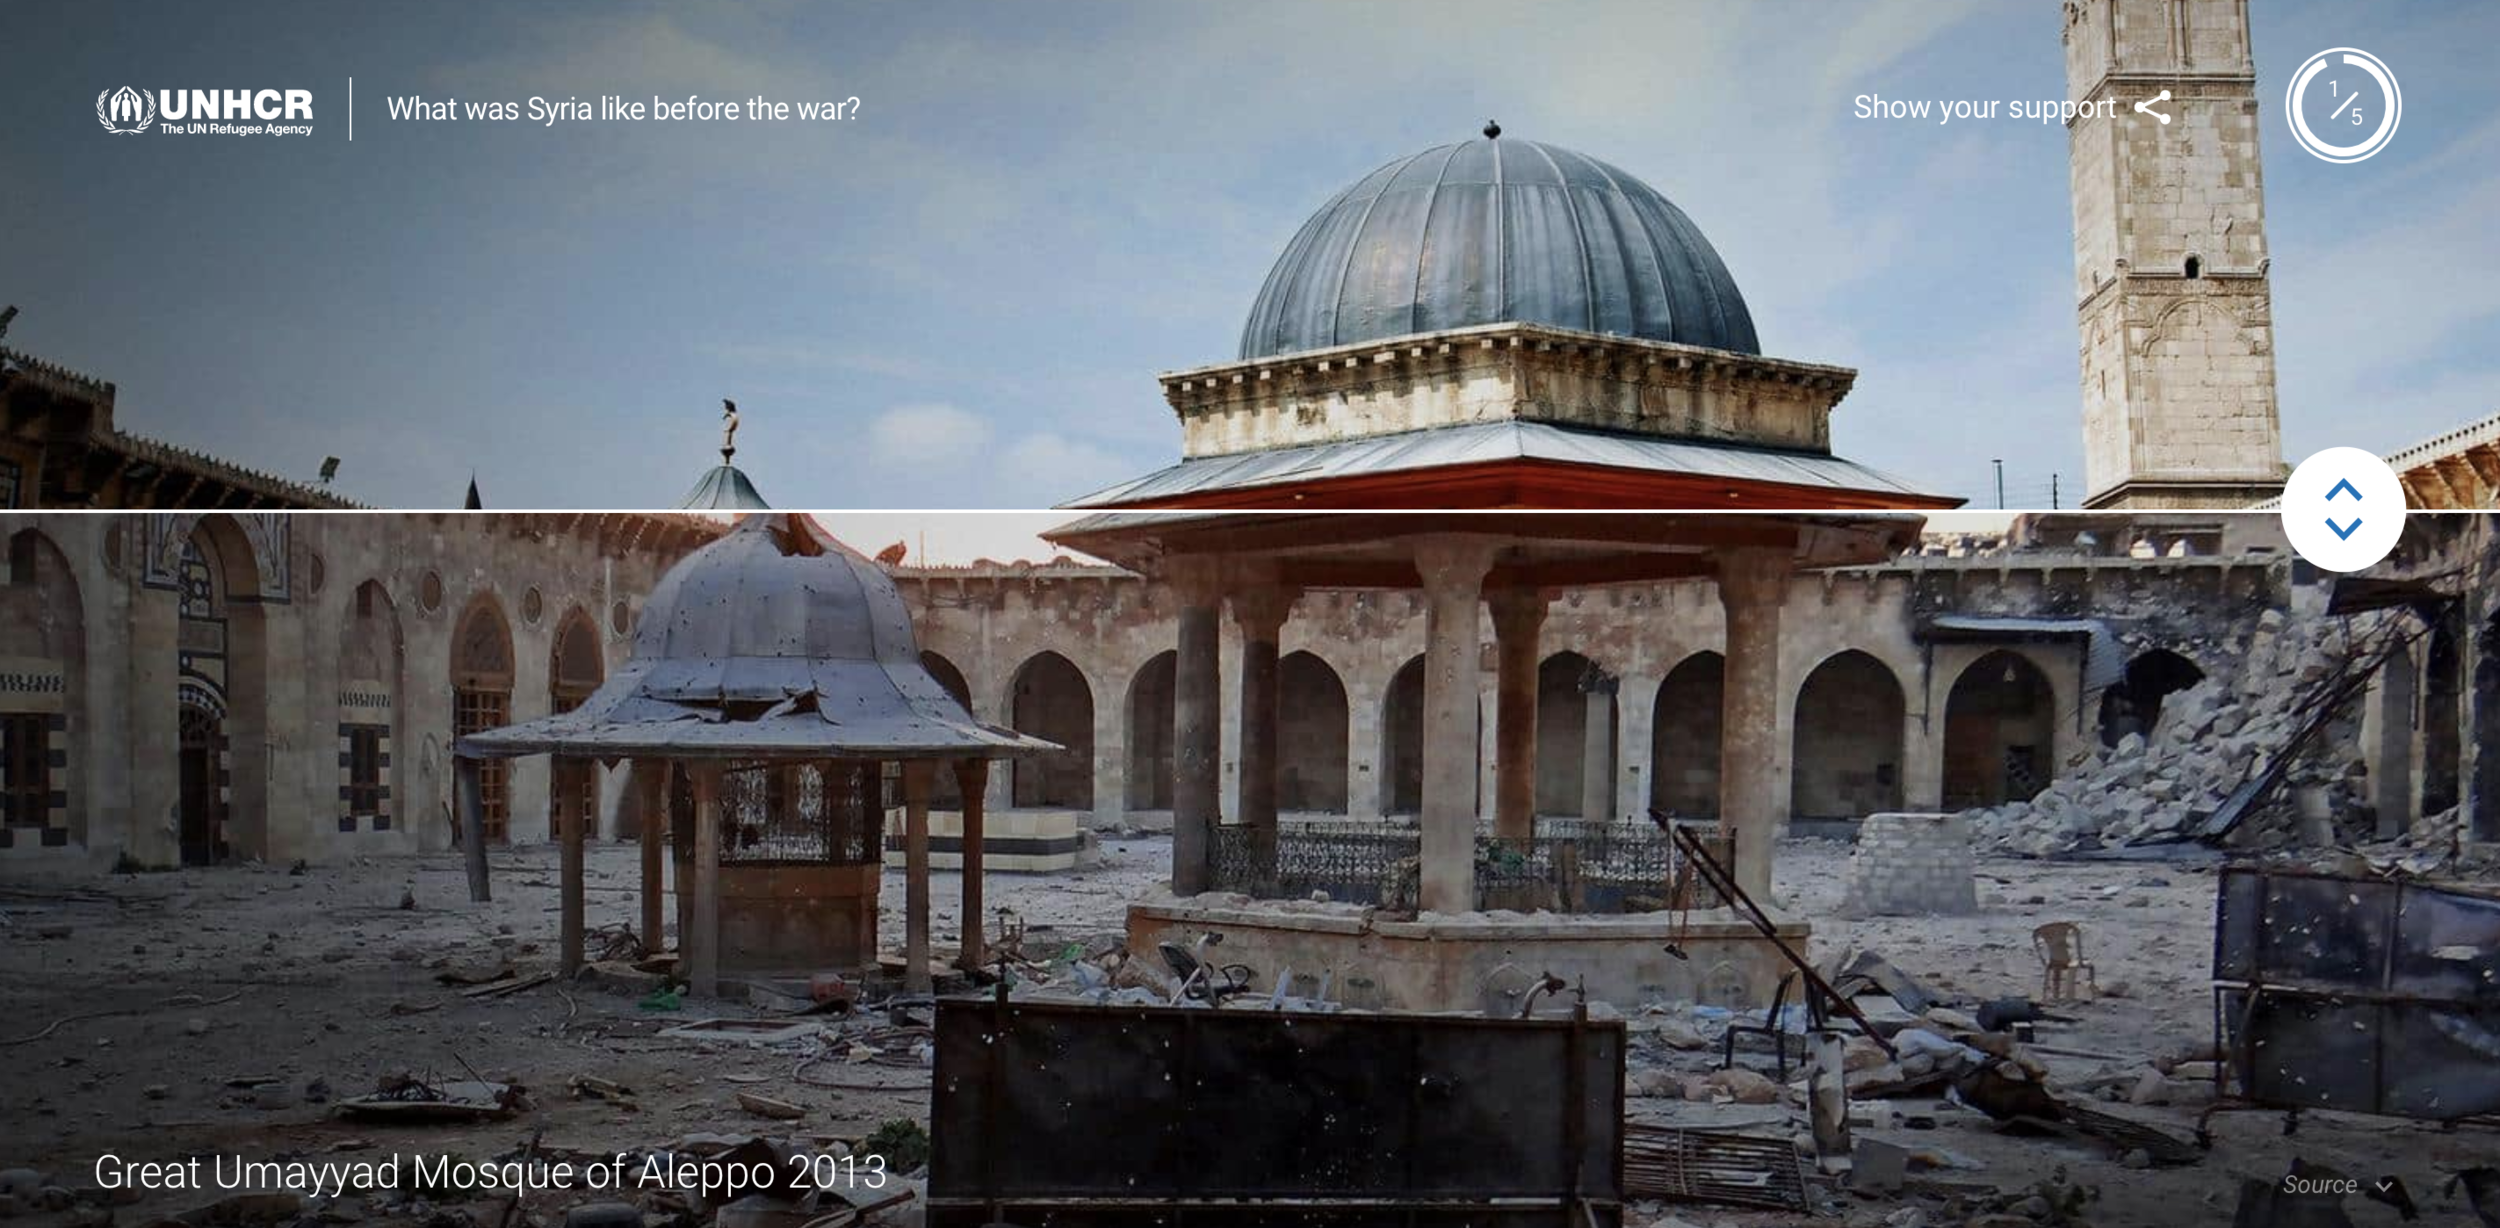 Simple, stark visuals.  Real images  showcased insurmountable change affecting the region, as this sliding image comparing the Grand Umayaad Mosque of Aleppo in 2013 v. before the war.Visitors controlled their experience so they could see the devastation and impact of the crisis over time.